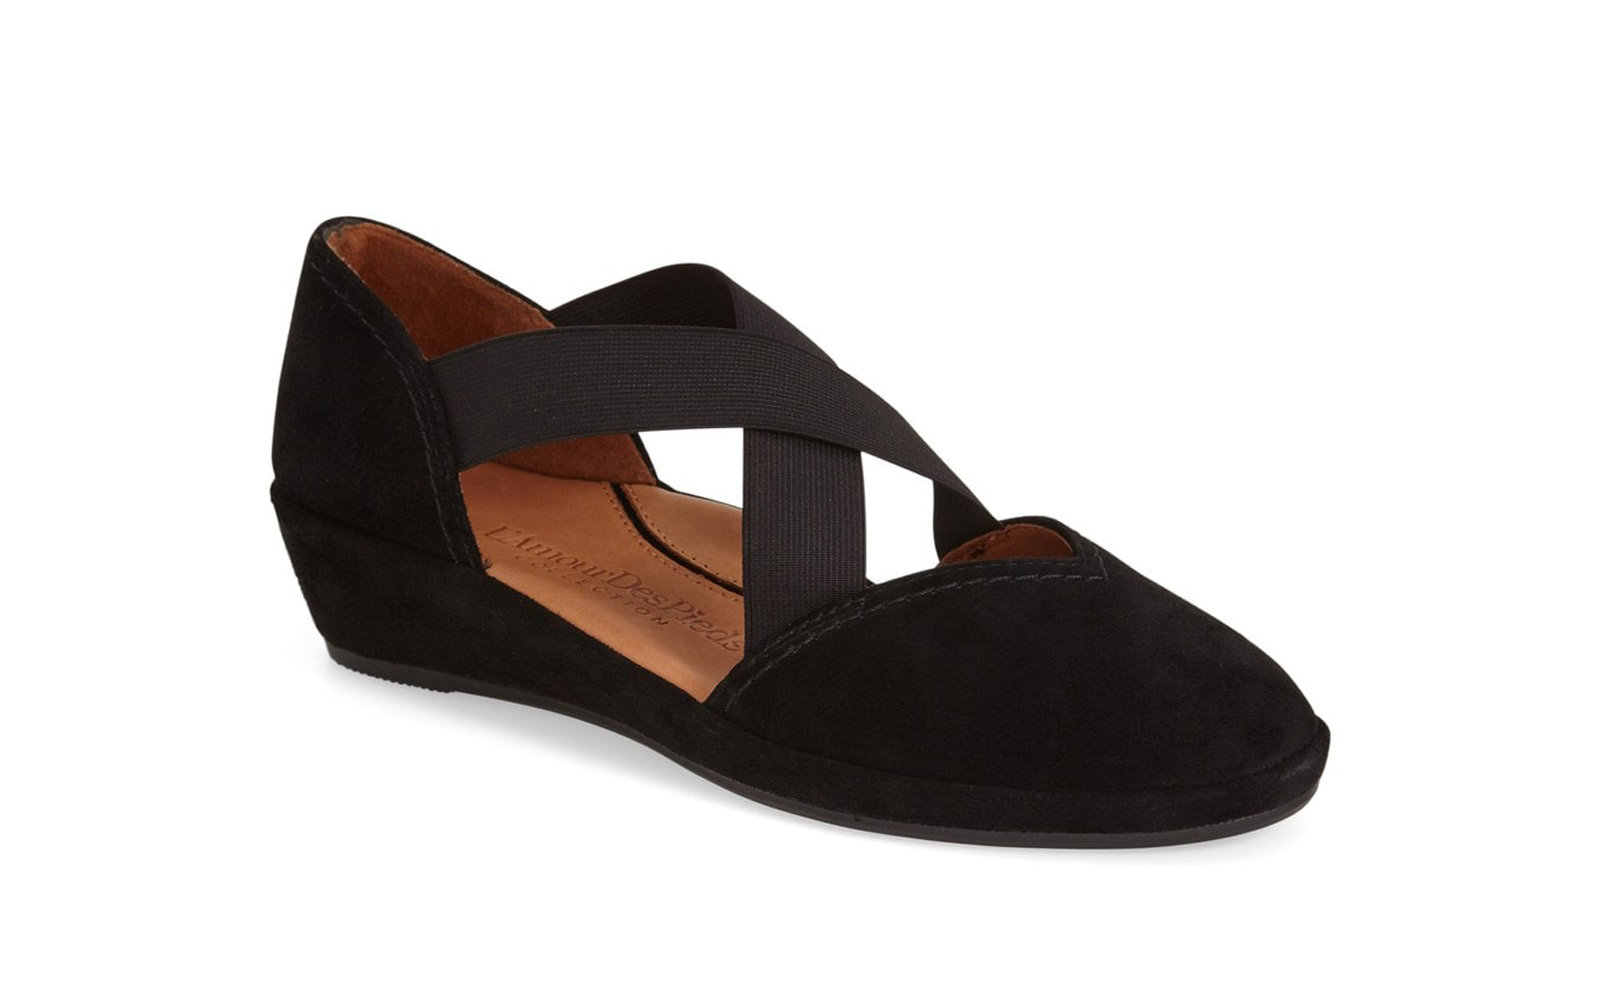 aa3d3f6c37cc L Amour Des Pieds  Bane  Wedge. lamour des pieds arch support shoes for  women. Courtesy of Nordstrom